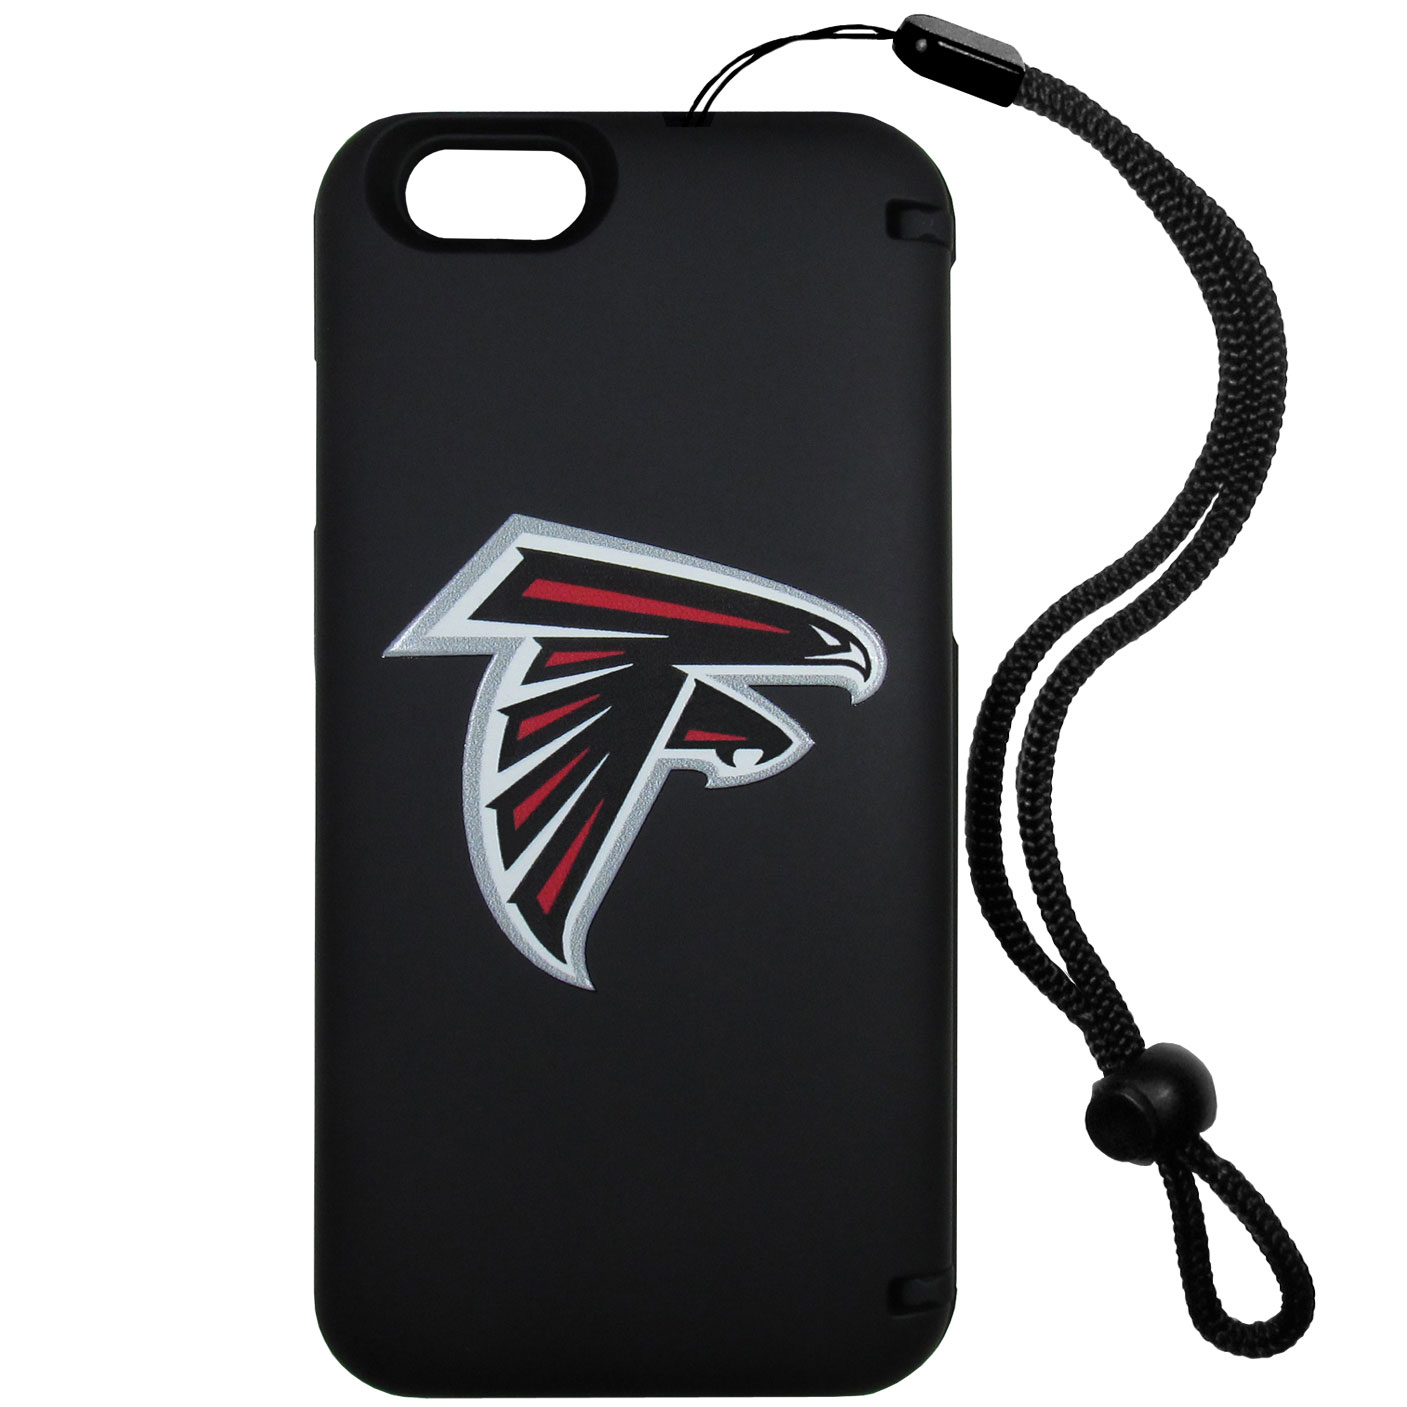 Atlanta Falcons iPhone 6 Everything Case - This case really does have everything but the kitchen sink! The hidden compartment lets you keep your cards, money and tickets to the big game safe and secure and has a compact mirror so you can make sure your game face is ready to go. It also comes with a kickstand to make chatting and watching videos a breeze. The wrist strap allows you to travel with ease with your everything case. If that's not enough, it also comes with the Atlanta Falcons logo printed in expert detail on the front.